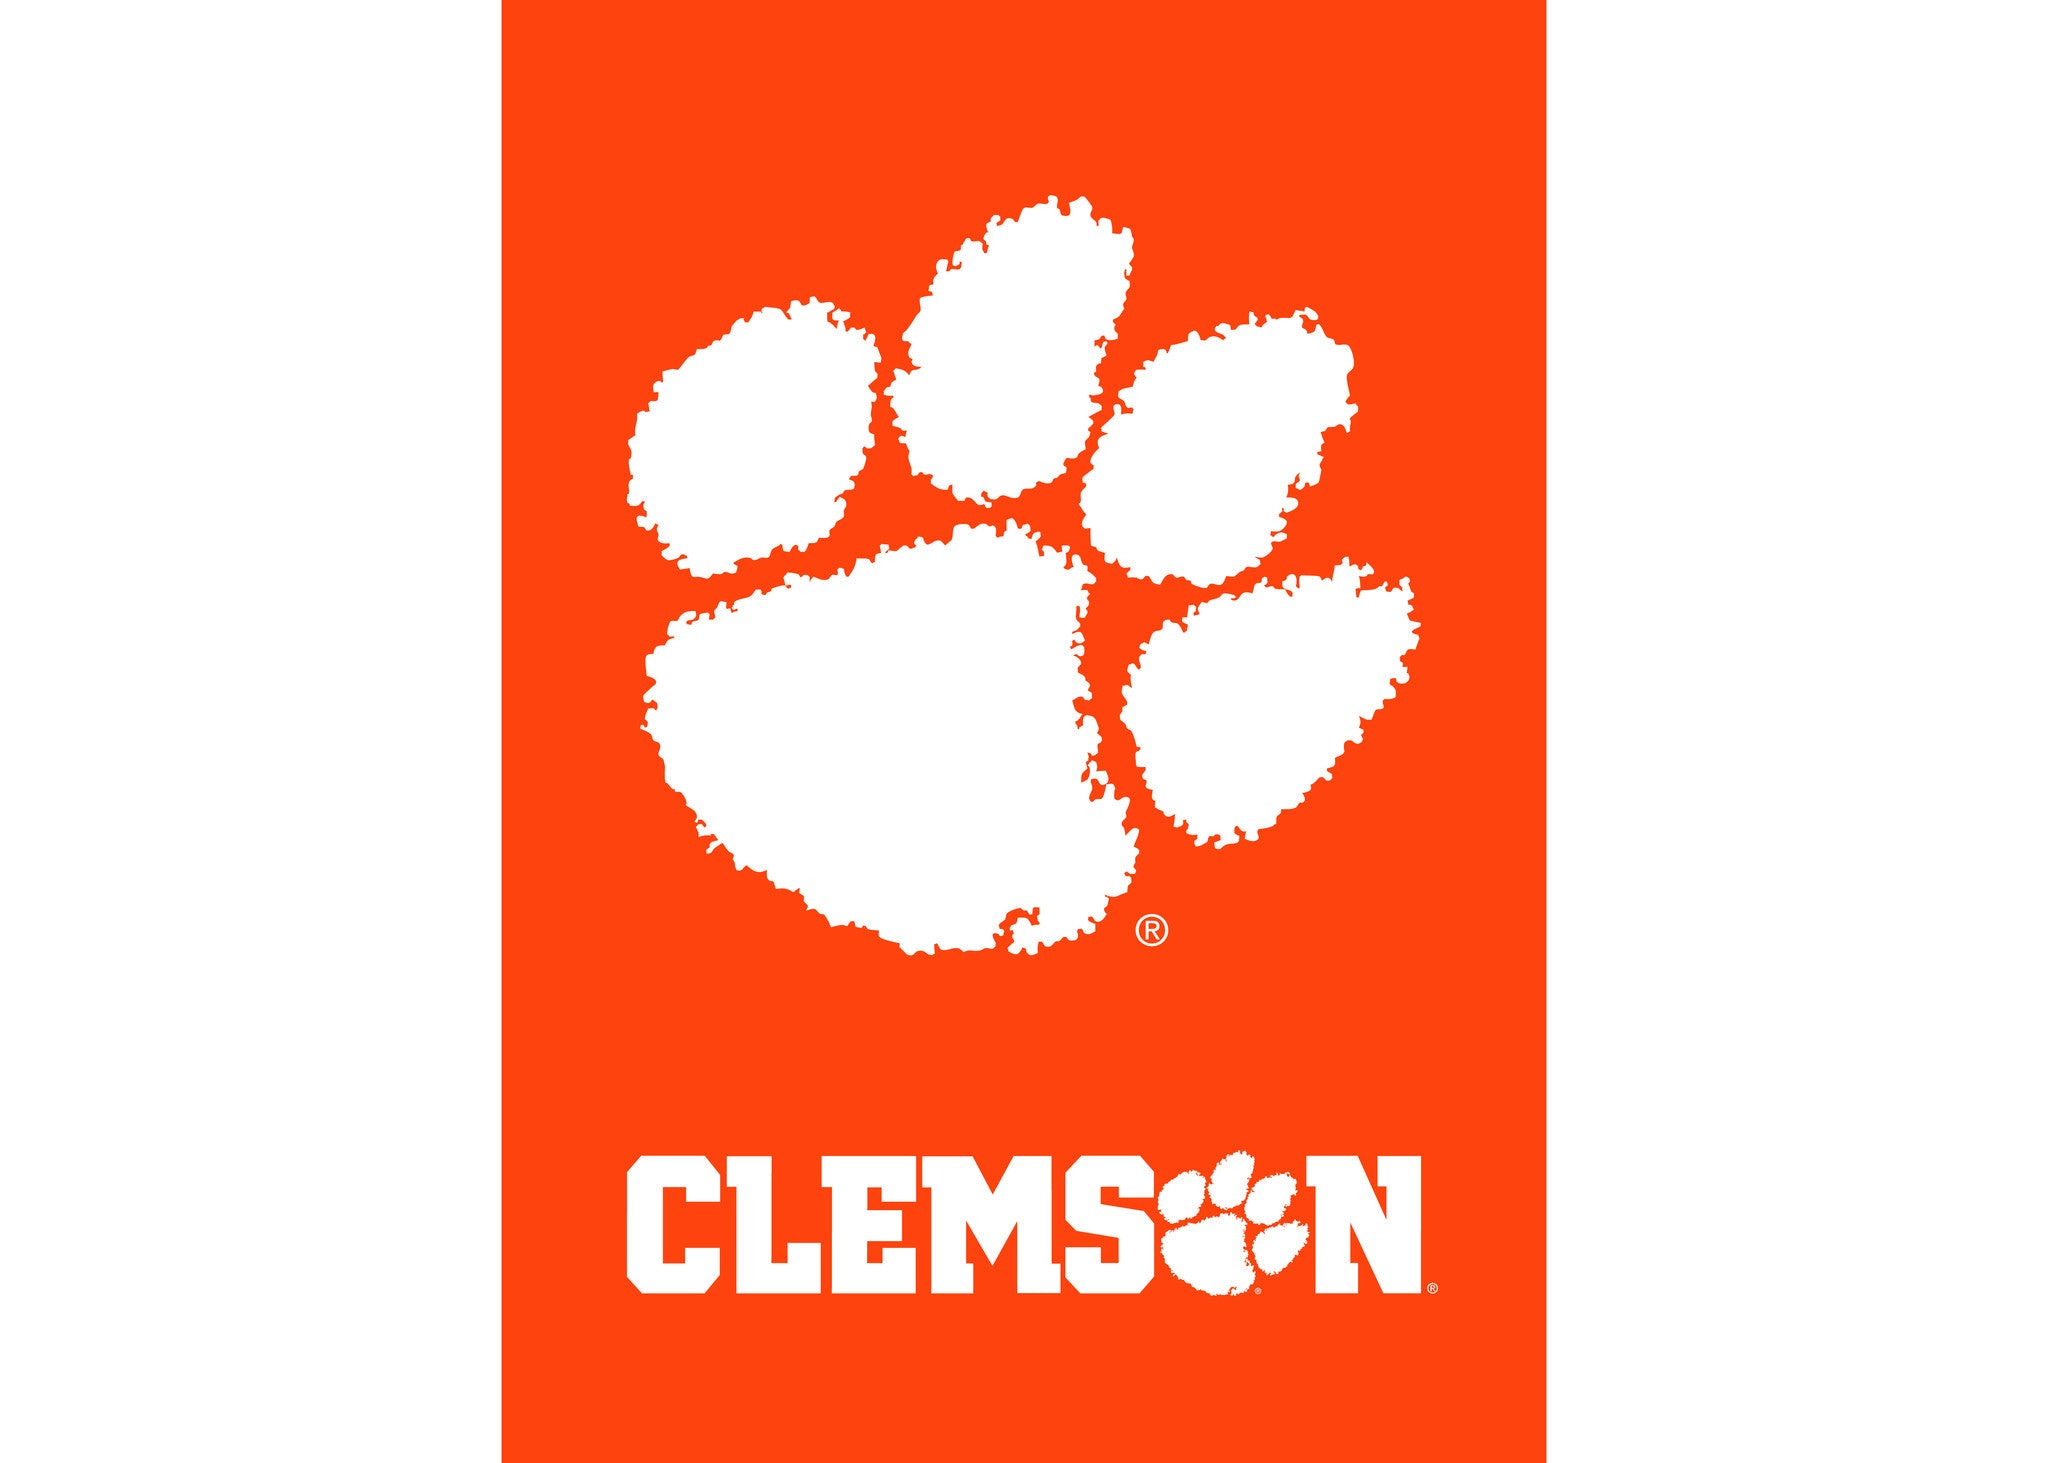 clemson tigers blanket for a blanket with a purpose